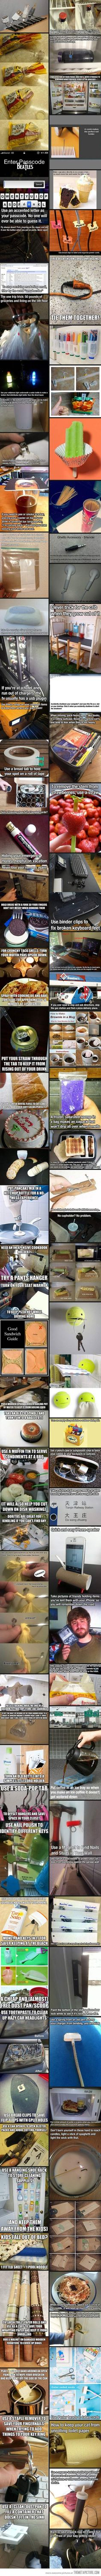 A series of photos showing some very clever tricks! - FB TroublemakersFB Troublemakers